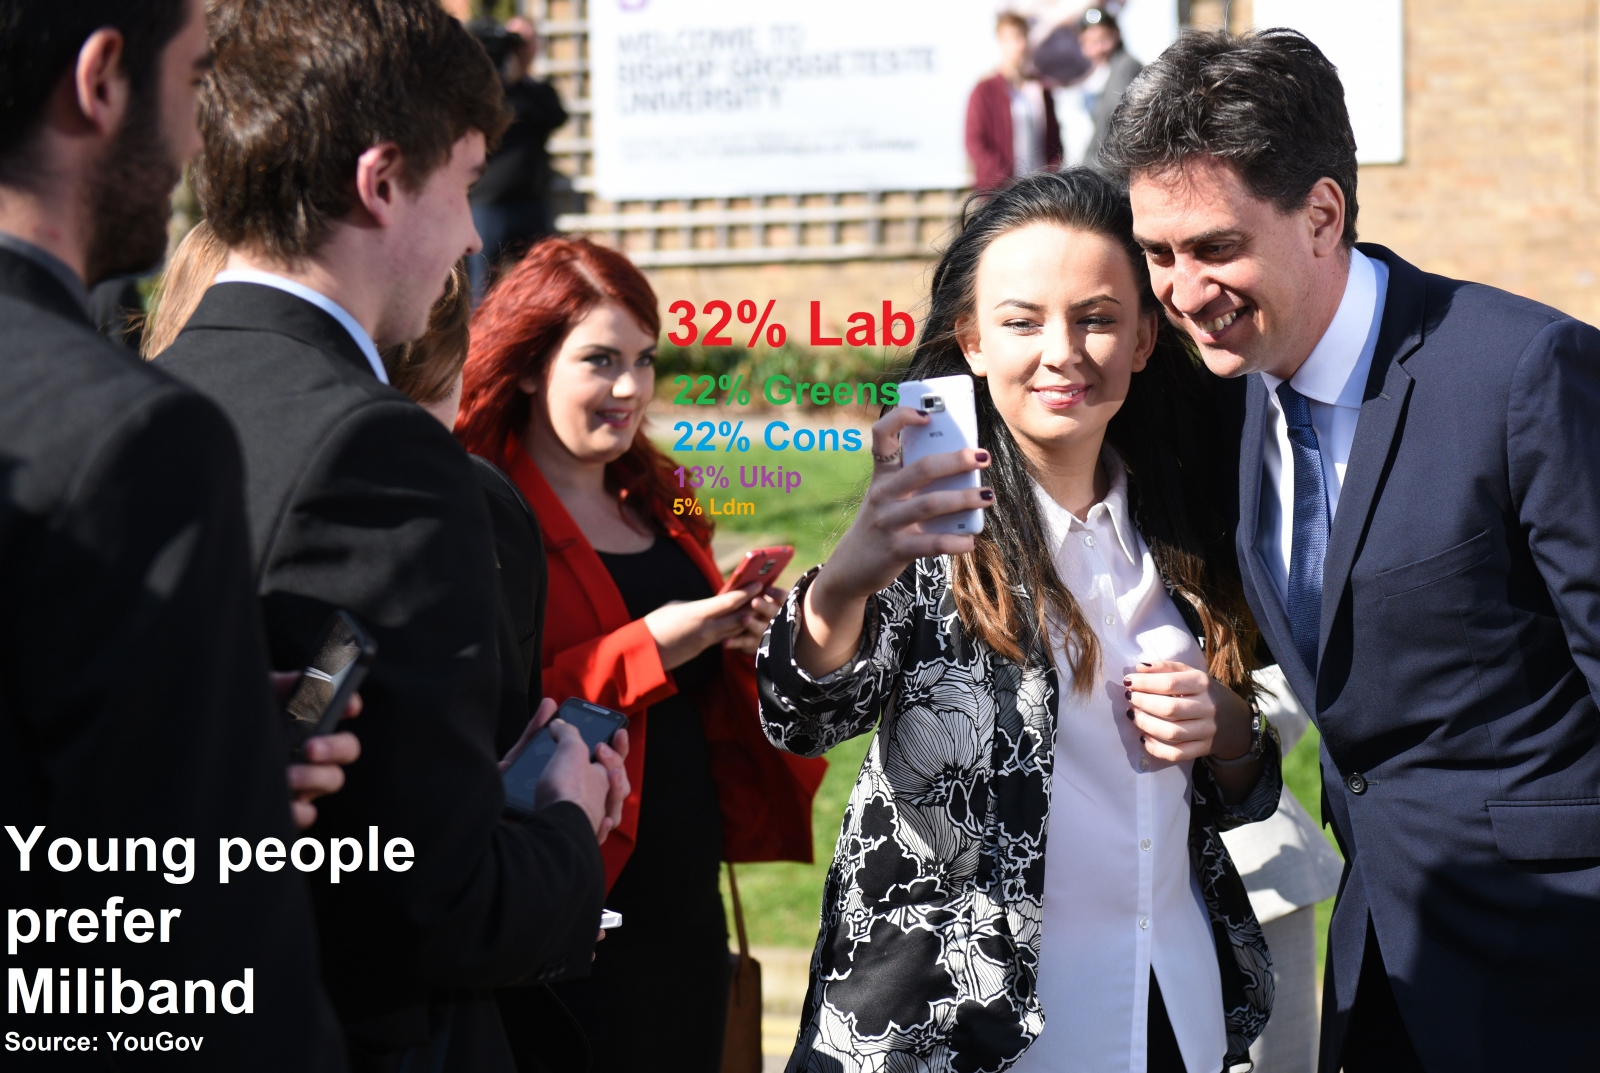 Labour wins the young vote